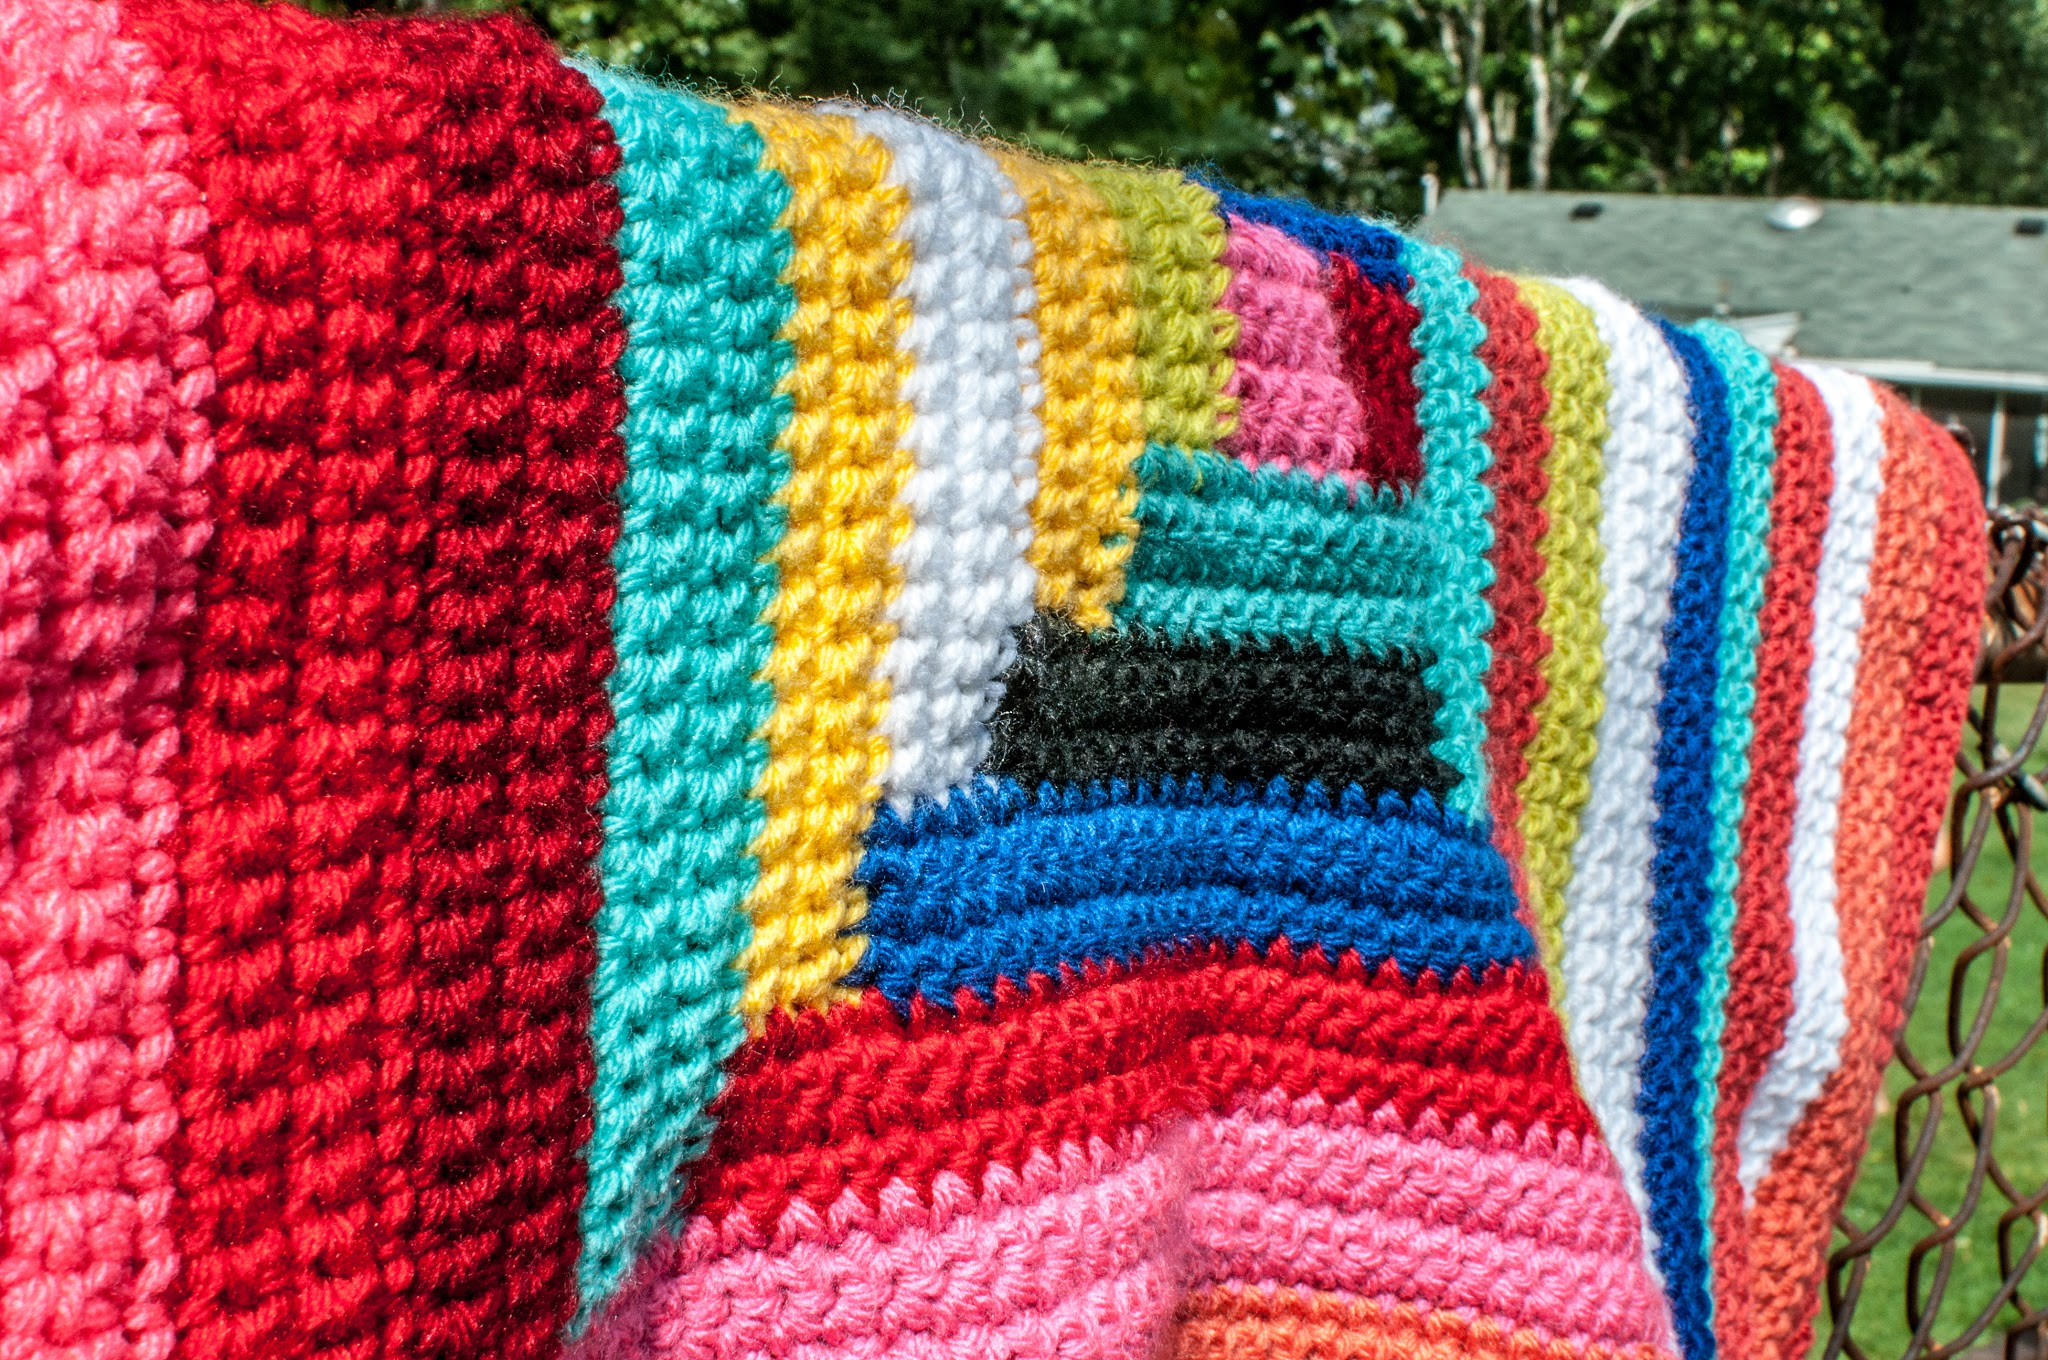 yarnbomb close-up - hijennybrown